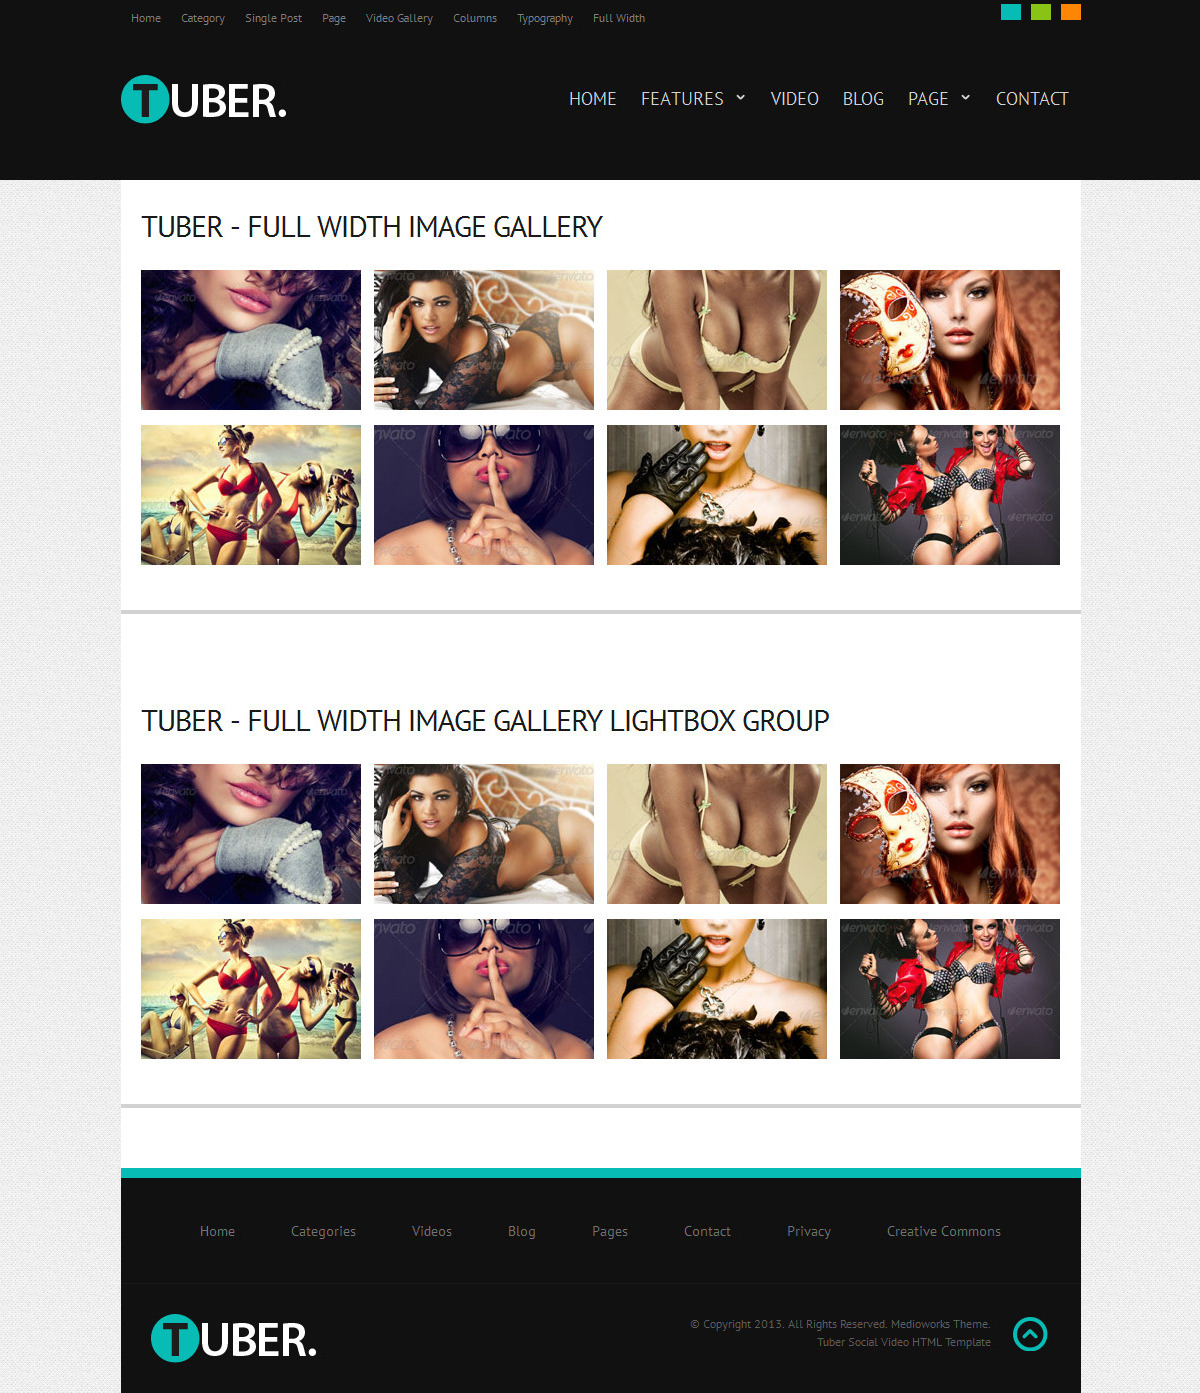 Tuber Social Video HTML Template - Tuber Social Video Responsive HTML5 Theme Gallery Layout Screenshot 4